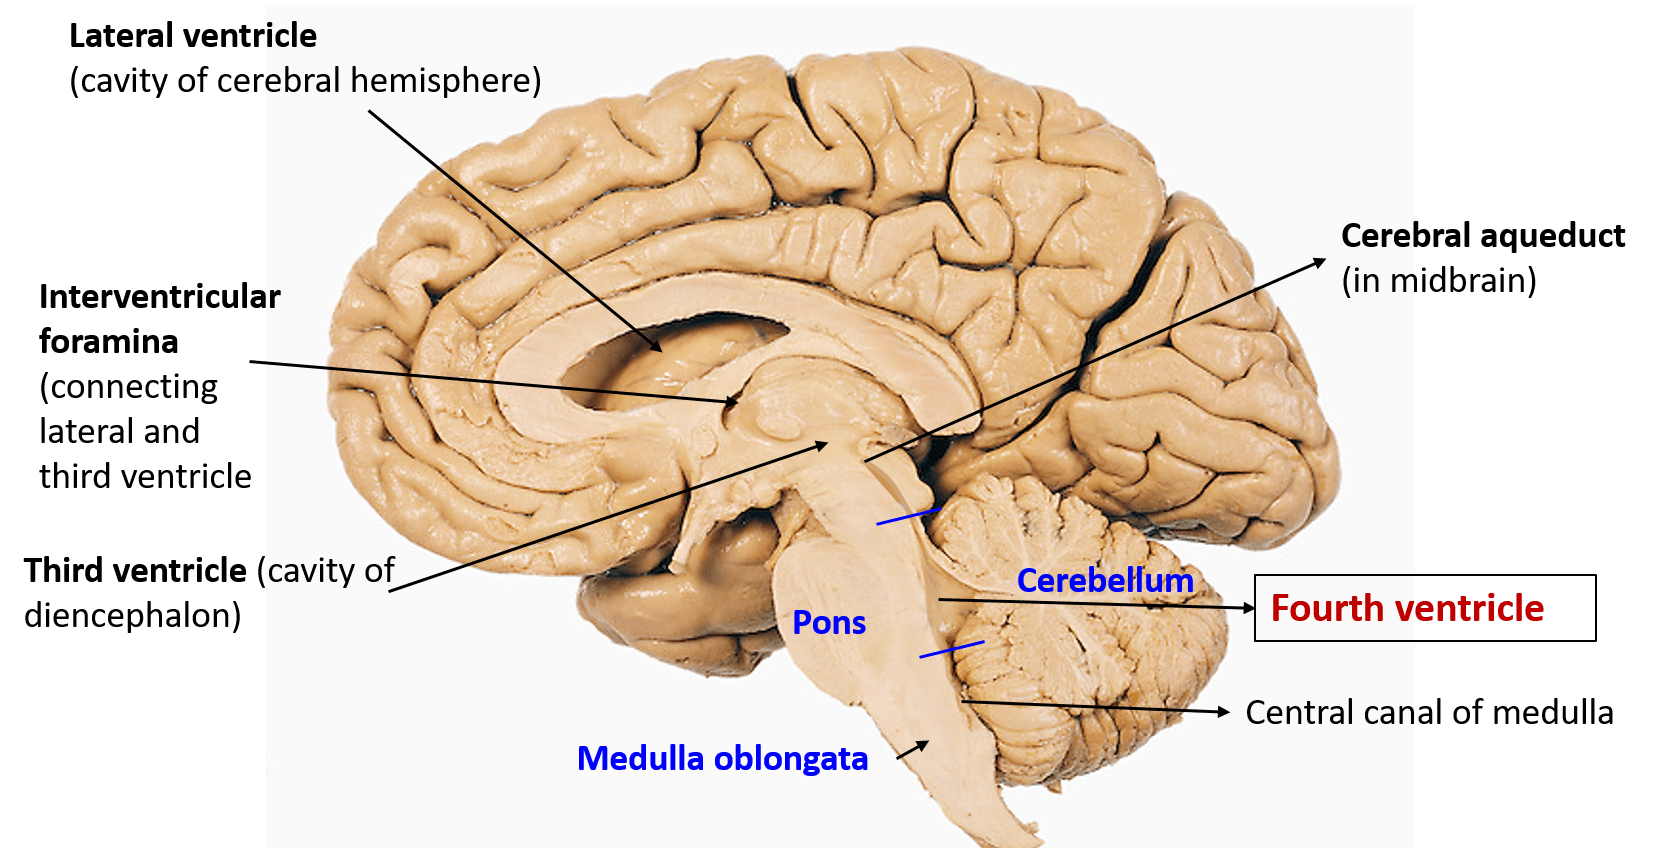 Lateral Ventricles Brain Anatomy Diagram - Illustration Of Wiring ...